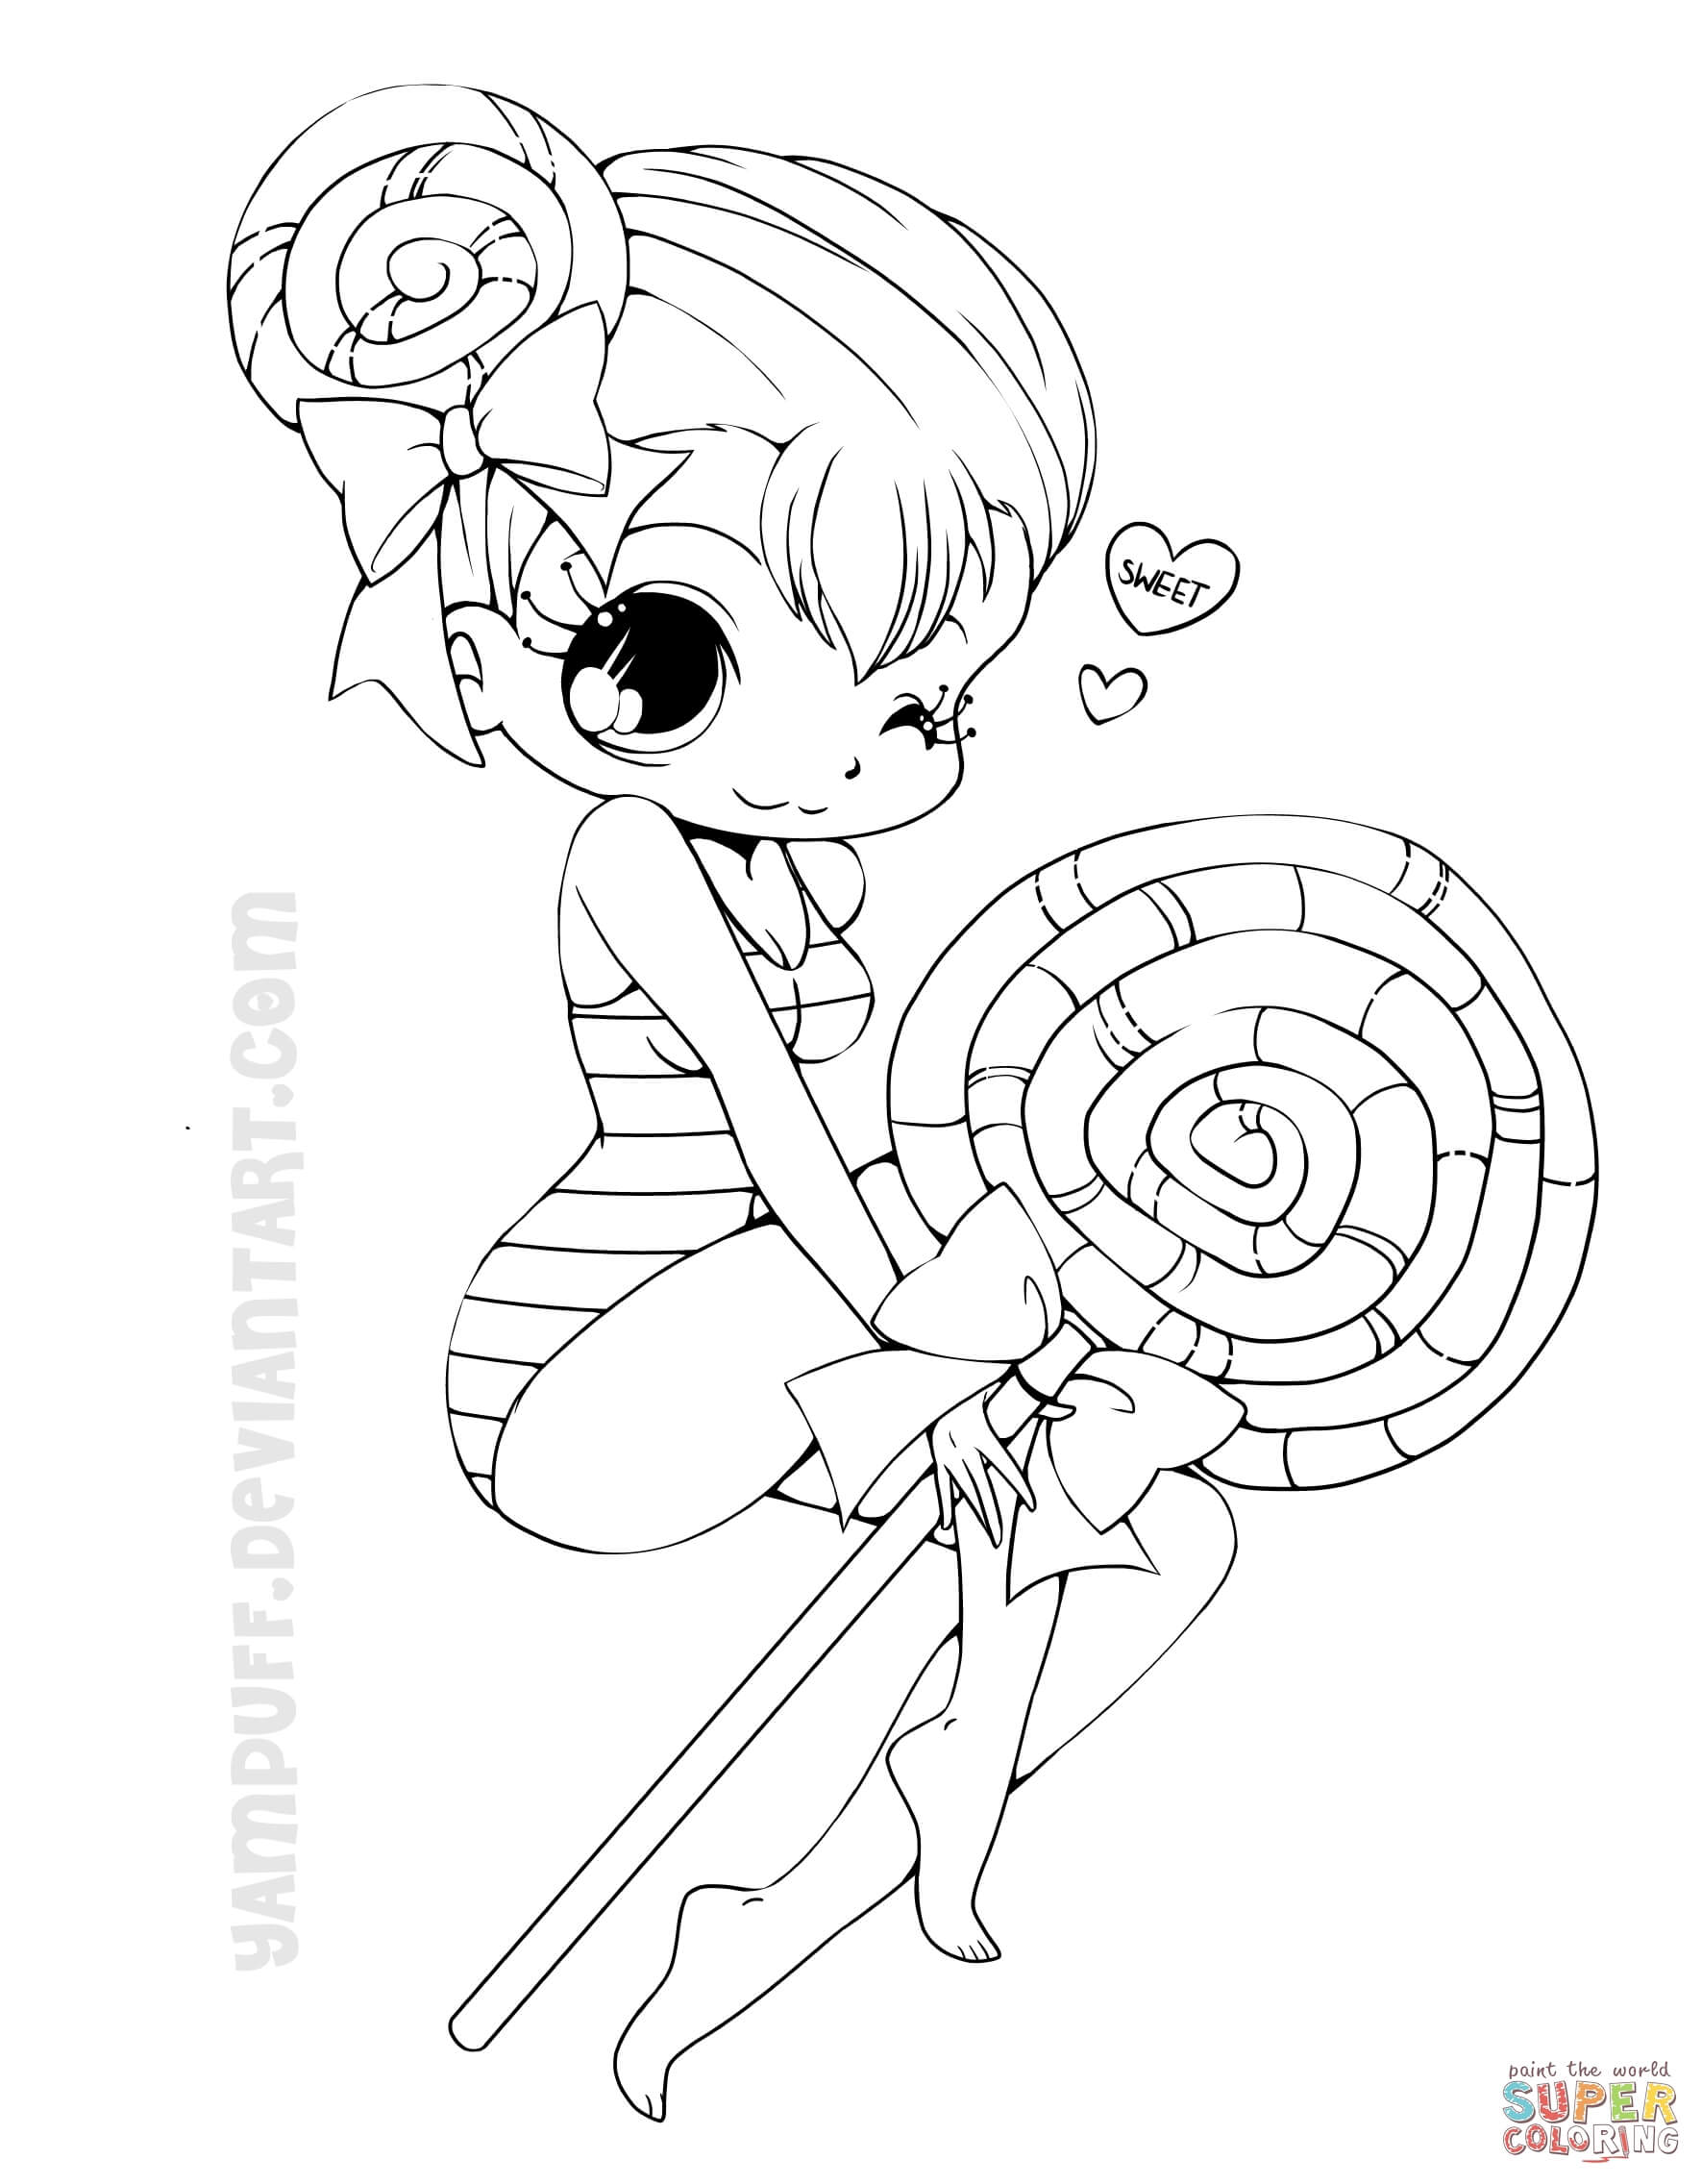 35 Most Magic Chibi Lollipop Girl Coloring Page Free Anime ...